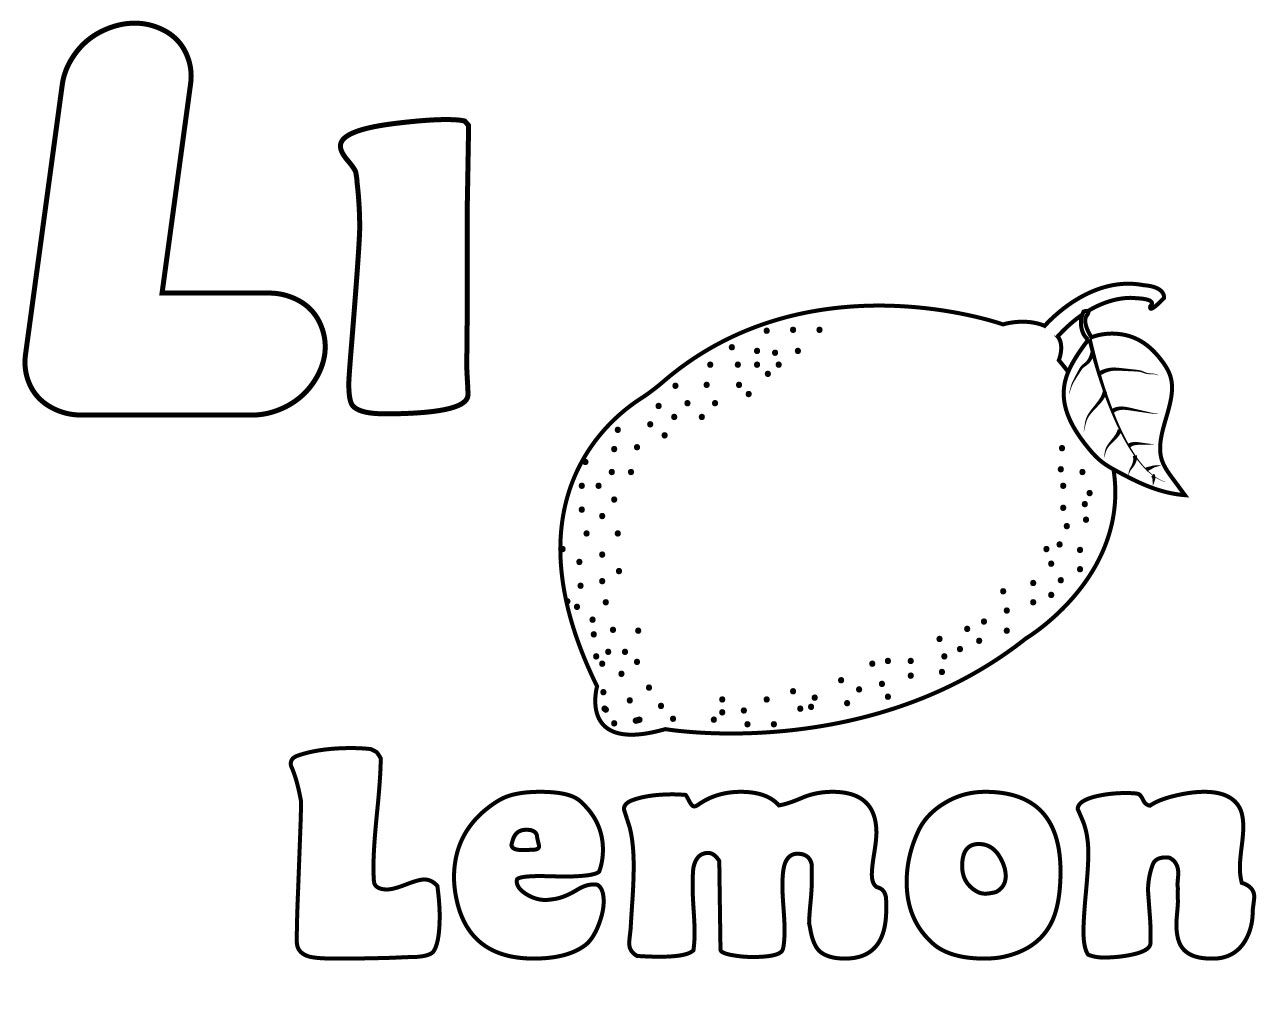 Free Printable Letter L Coloring Pages With Images Coloring